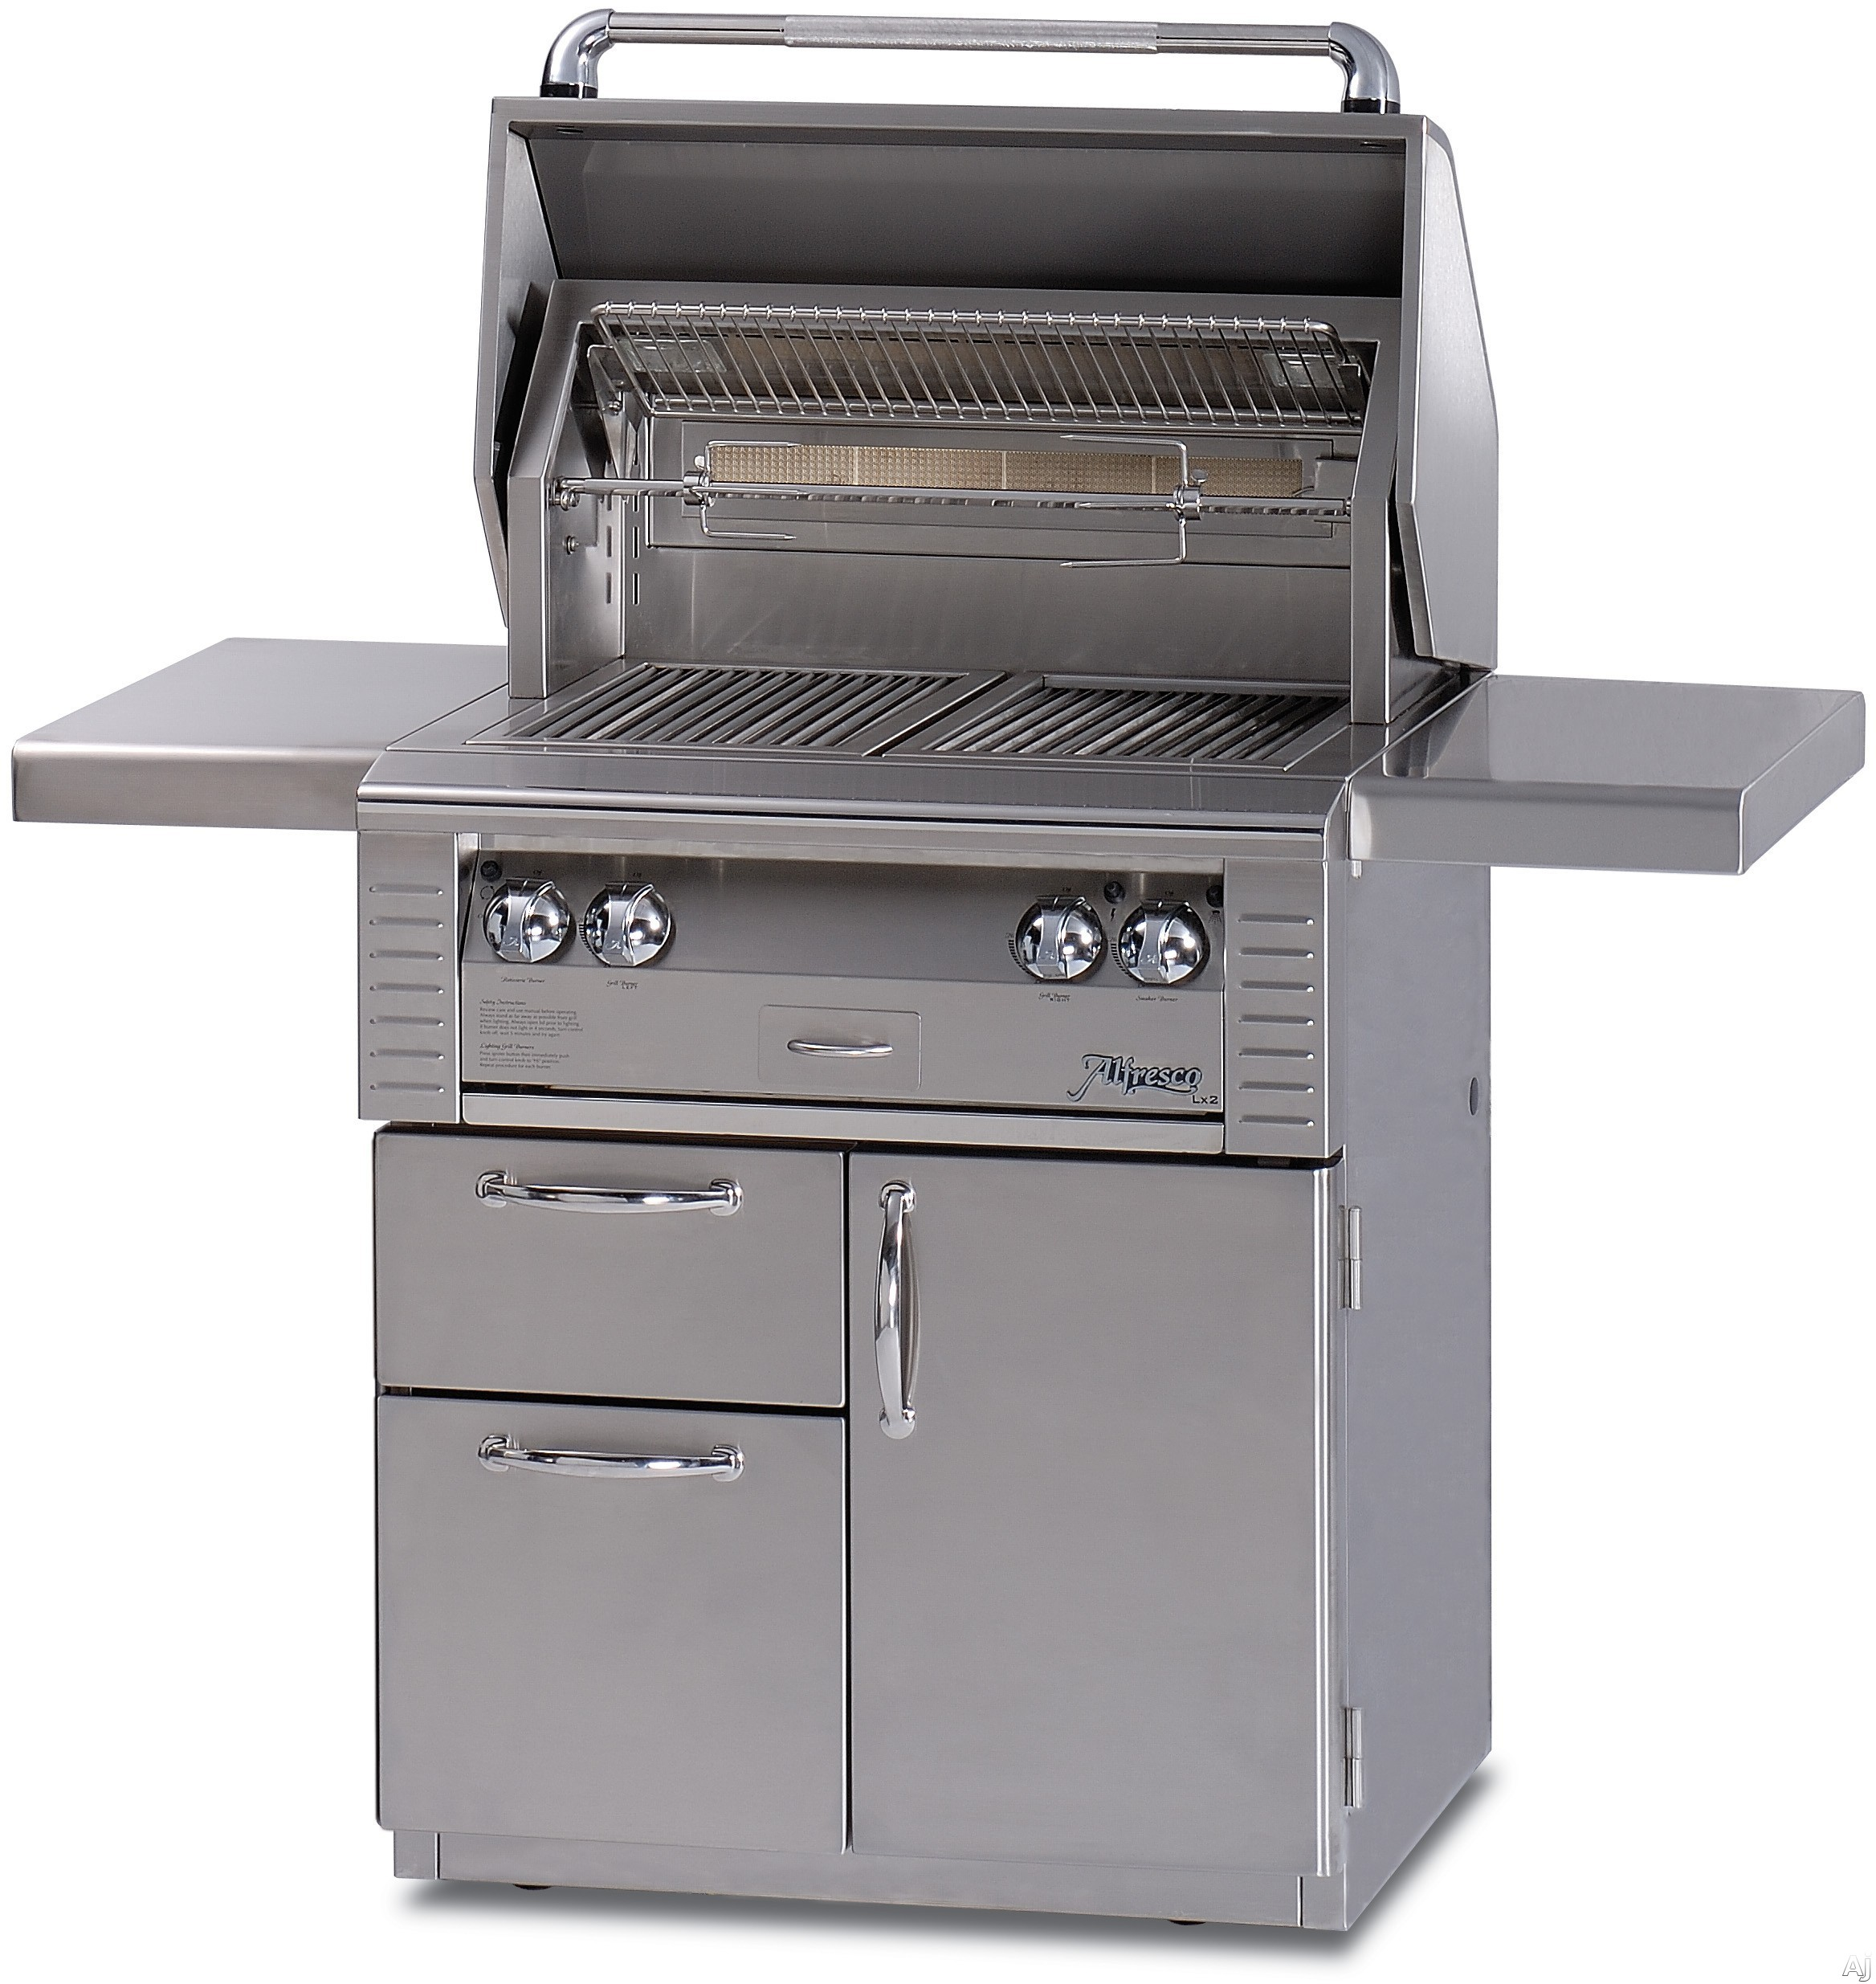 Alfresco LX2 ALX230CD 30 Inch Freestanding Gas Grill with 542 sq. in. Cooking Surface, 2 Stainless Steel Main Burners, Integrated Rotisserie Motor, Halogen Work Lights and 2 Access Drawers ALX230CD